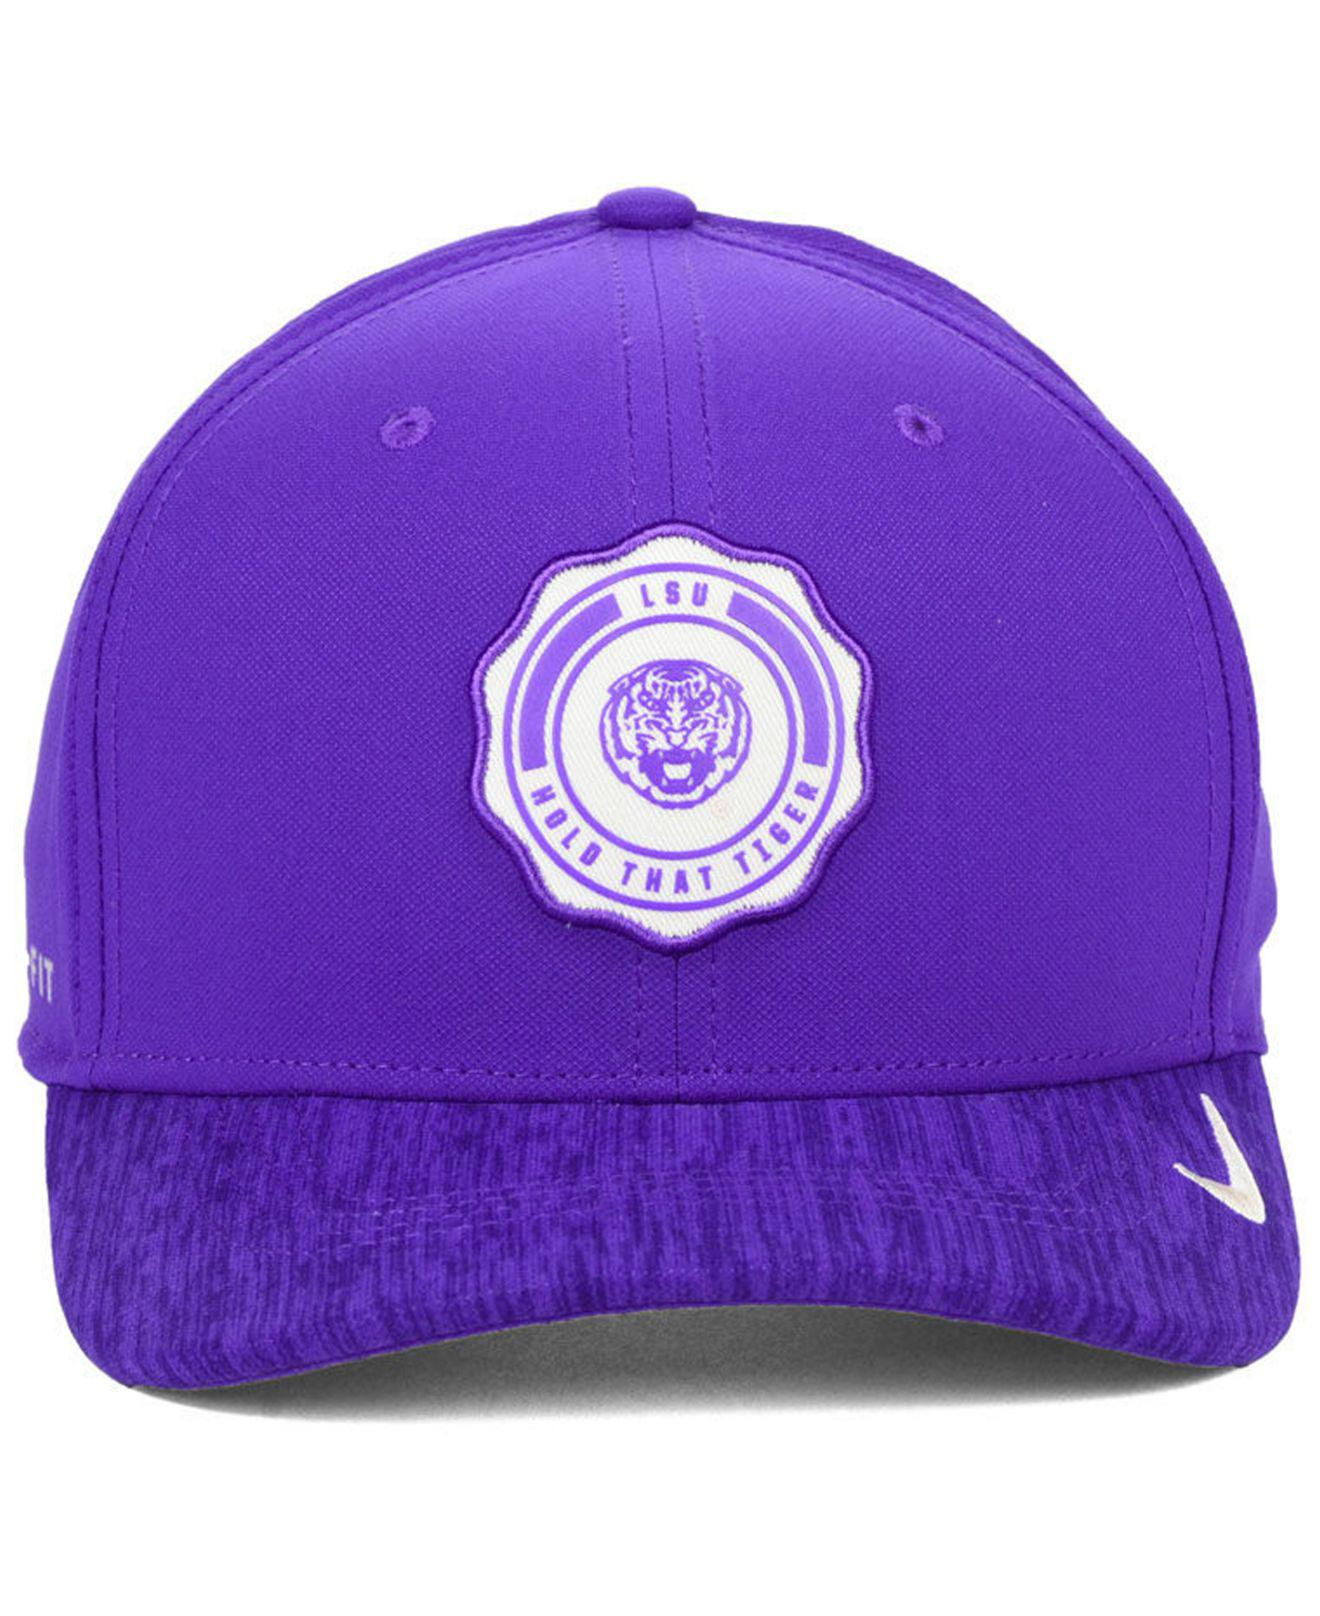 low priced b8778 ad587 ... college classic 39thirty flex hat 0935b bd0dc  switzerland lyst nike  lsu tigers rivalry cap in purple for men fb149 73de2